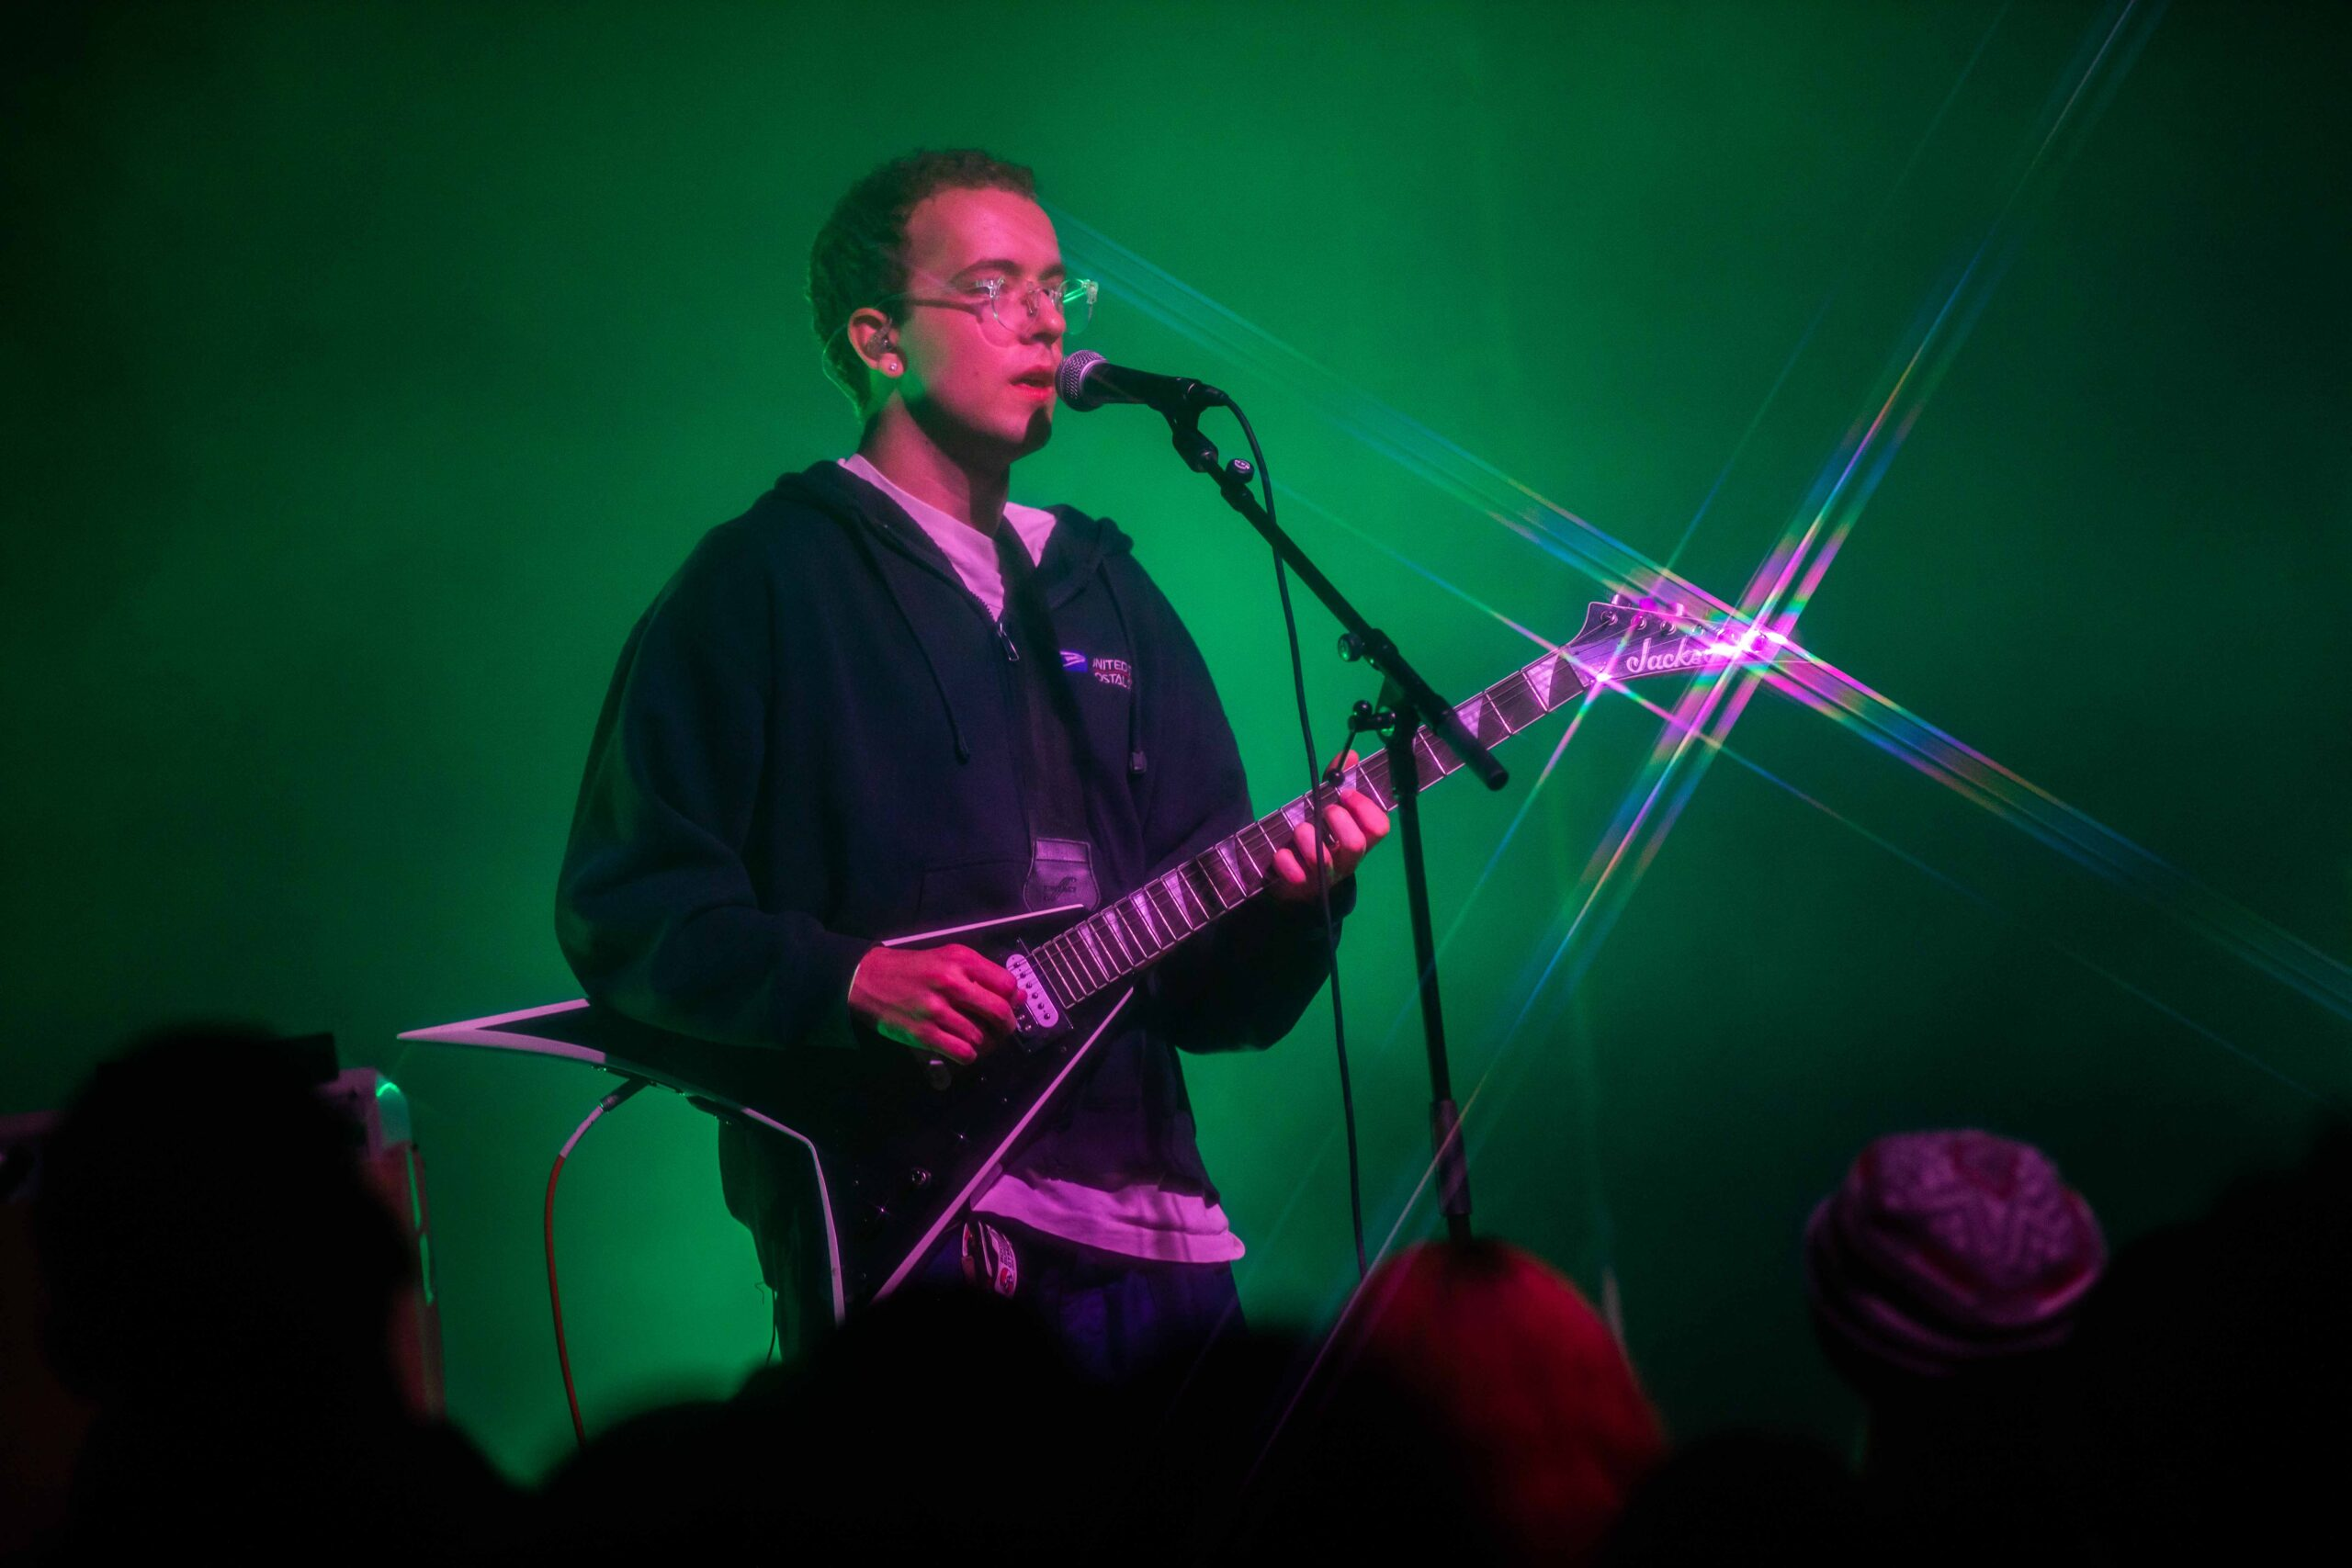 REVIEW: Zack Villere puts on a raw and intimate performance at Lincoln Hall